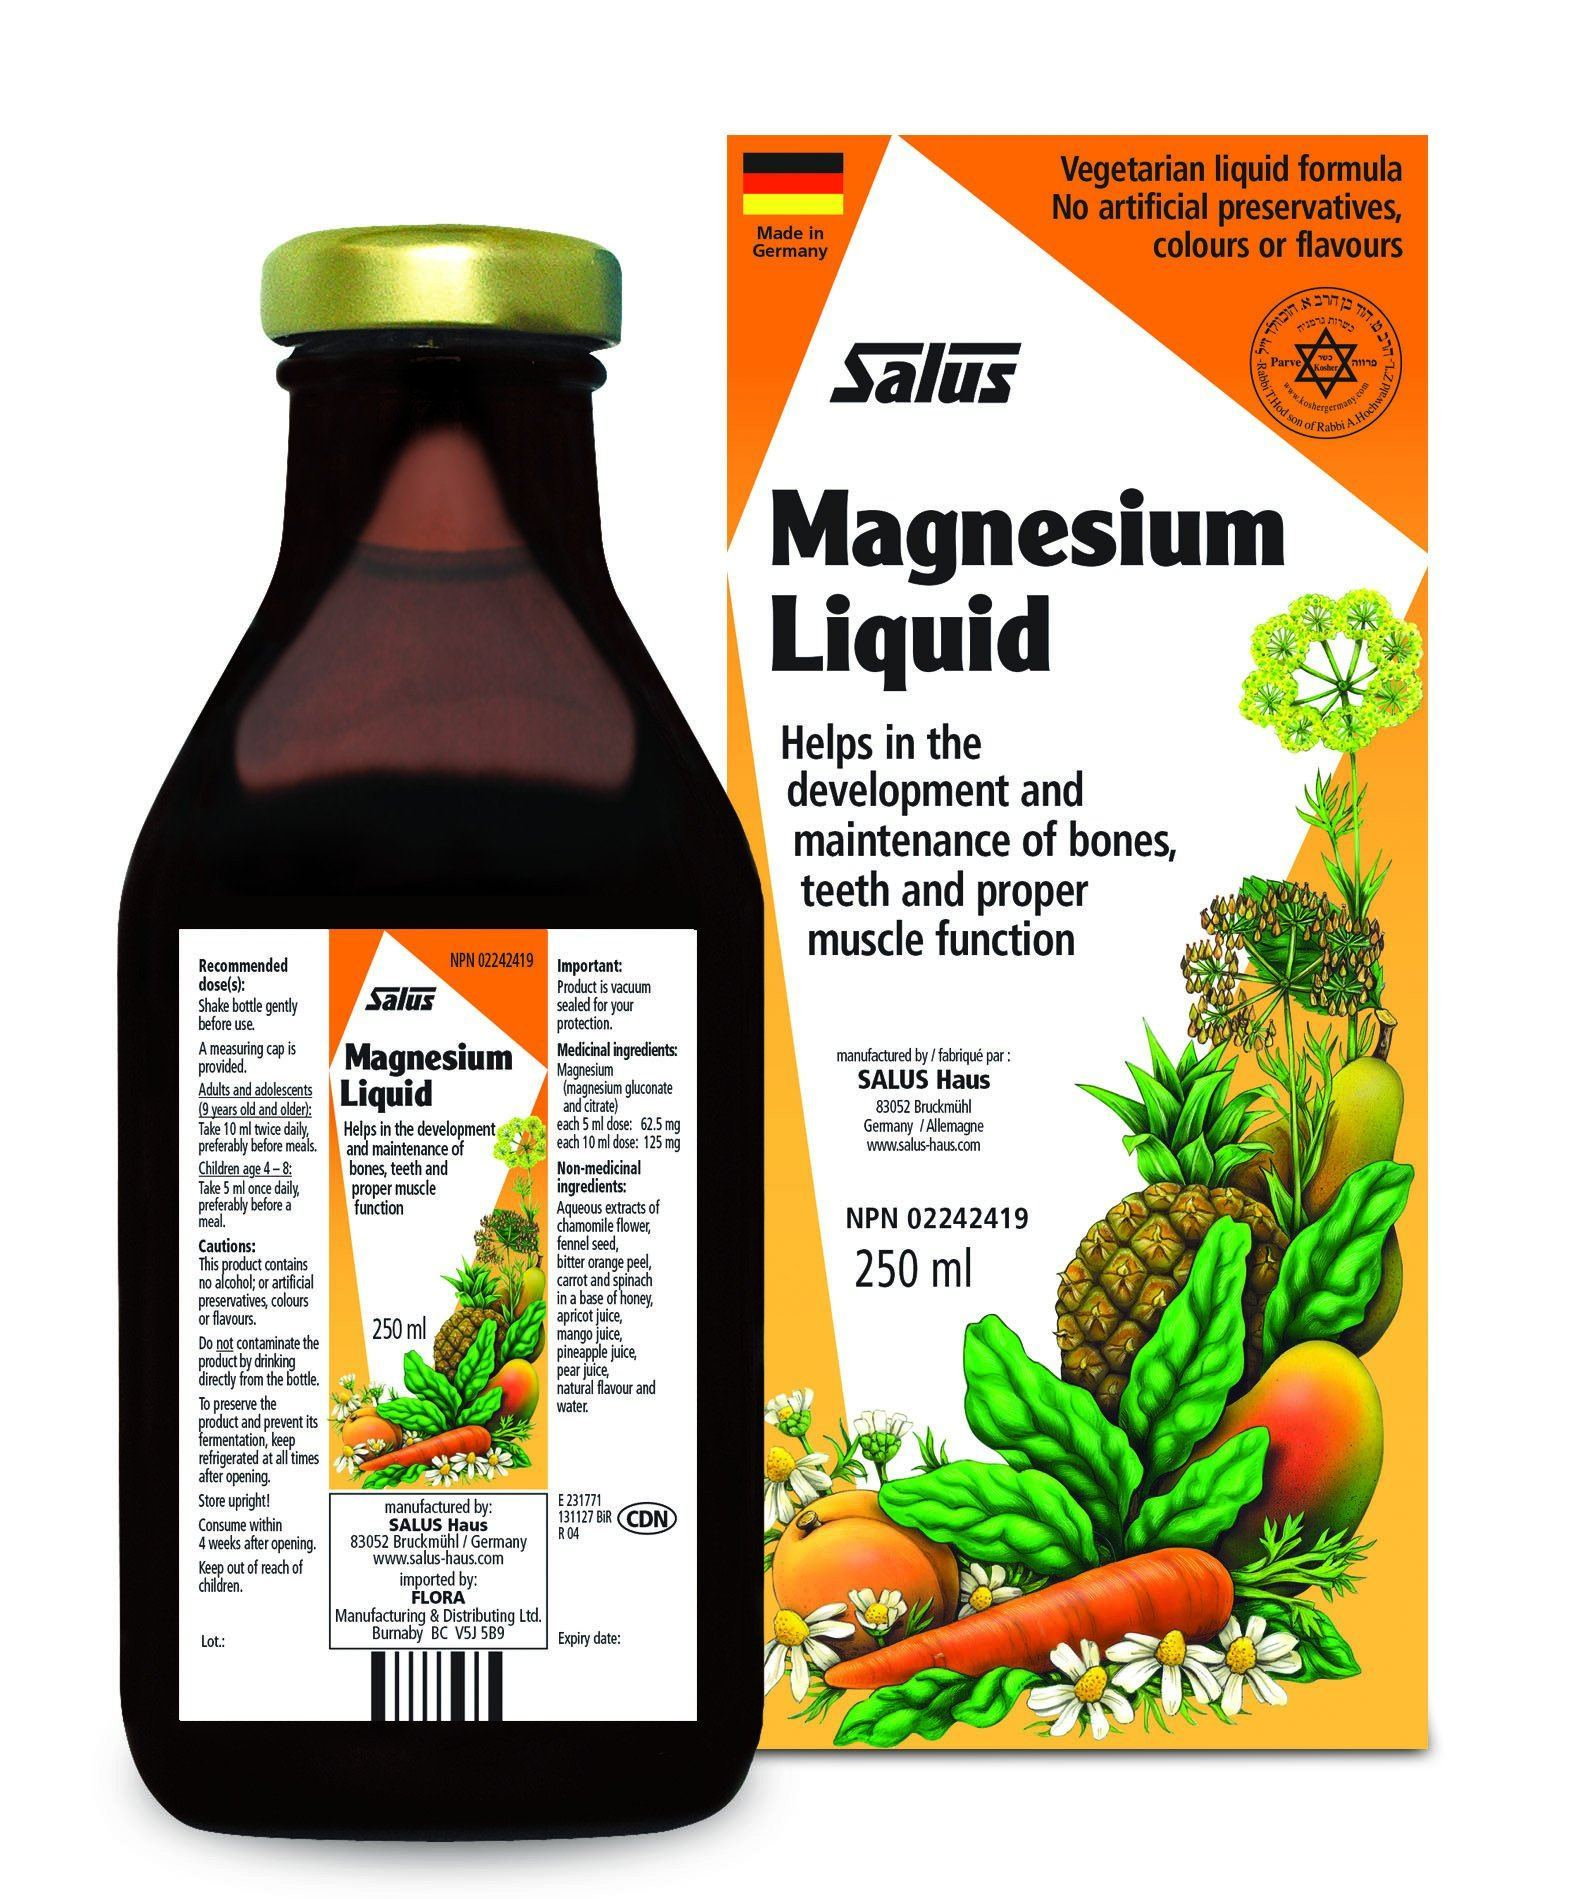 Supplements & Vitamins - Salus - Magnesium Liquid, 250ml